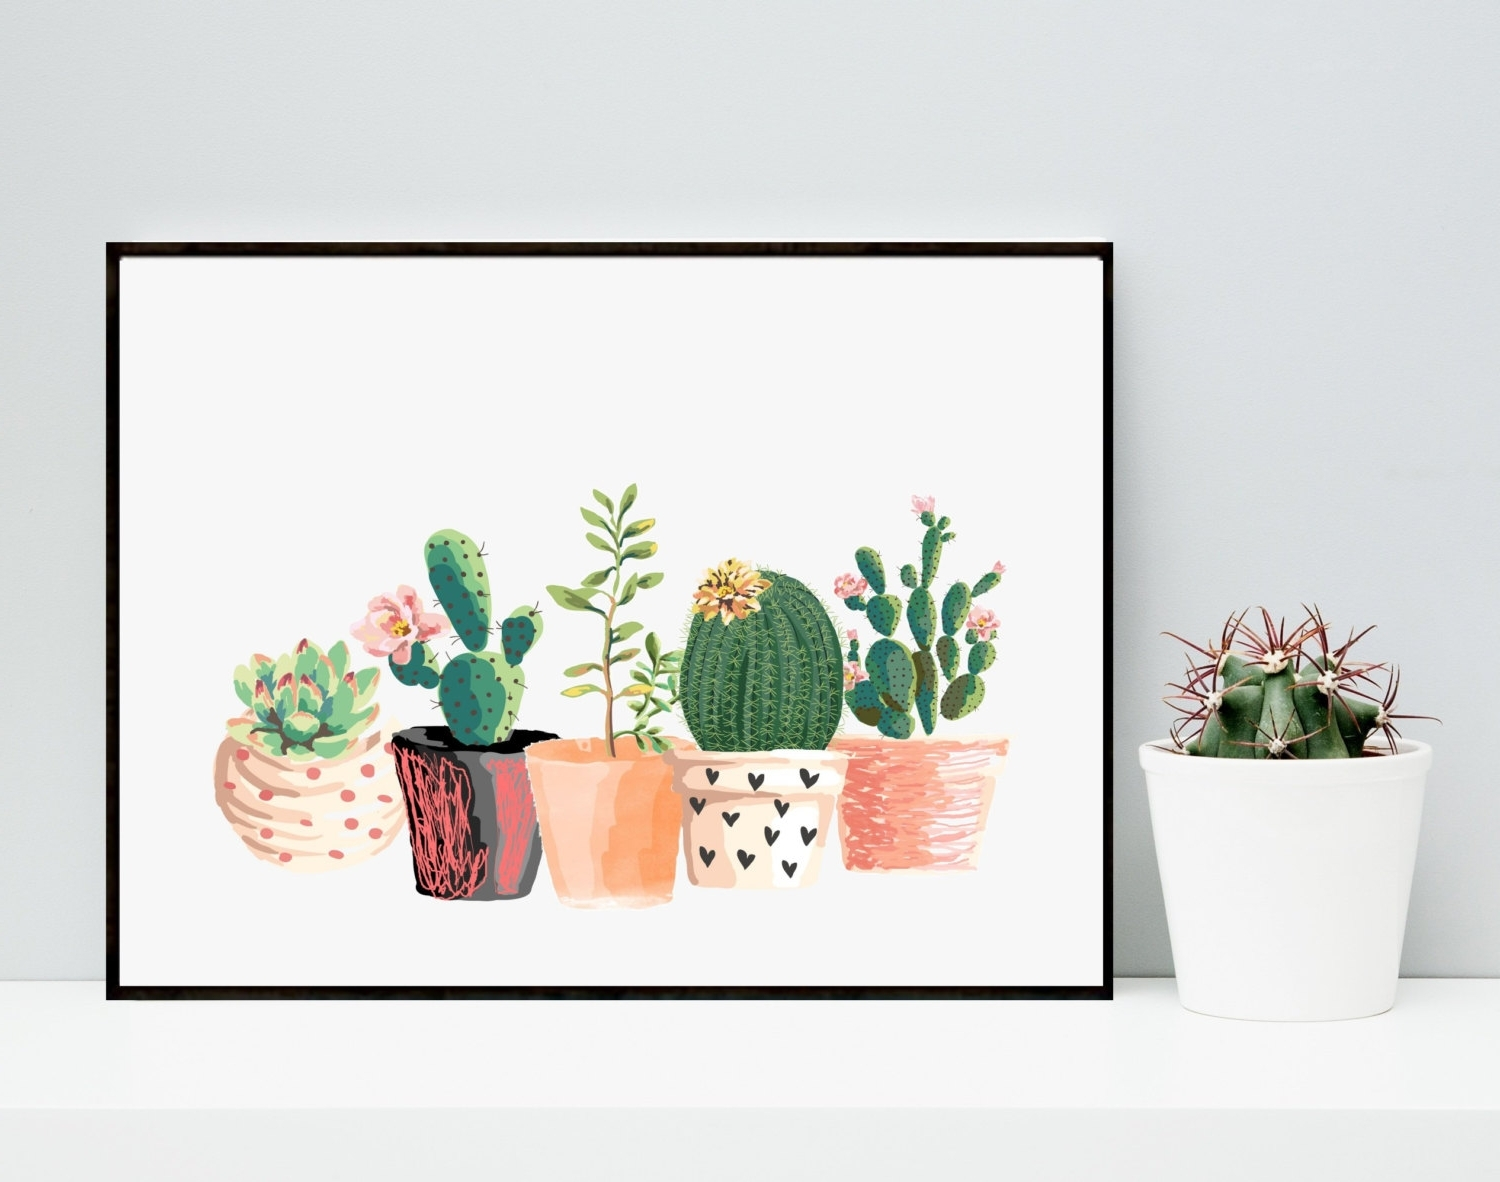 Cactus Wall Art Pertaining To Most Popular 35 Cactus Wall Art, Cactus Wall Art Wood Metal 80Cm – Swinkimorskie (Gallery 11 of 20)